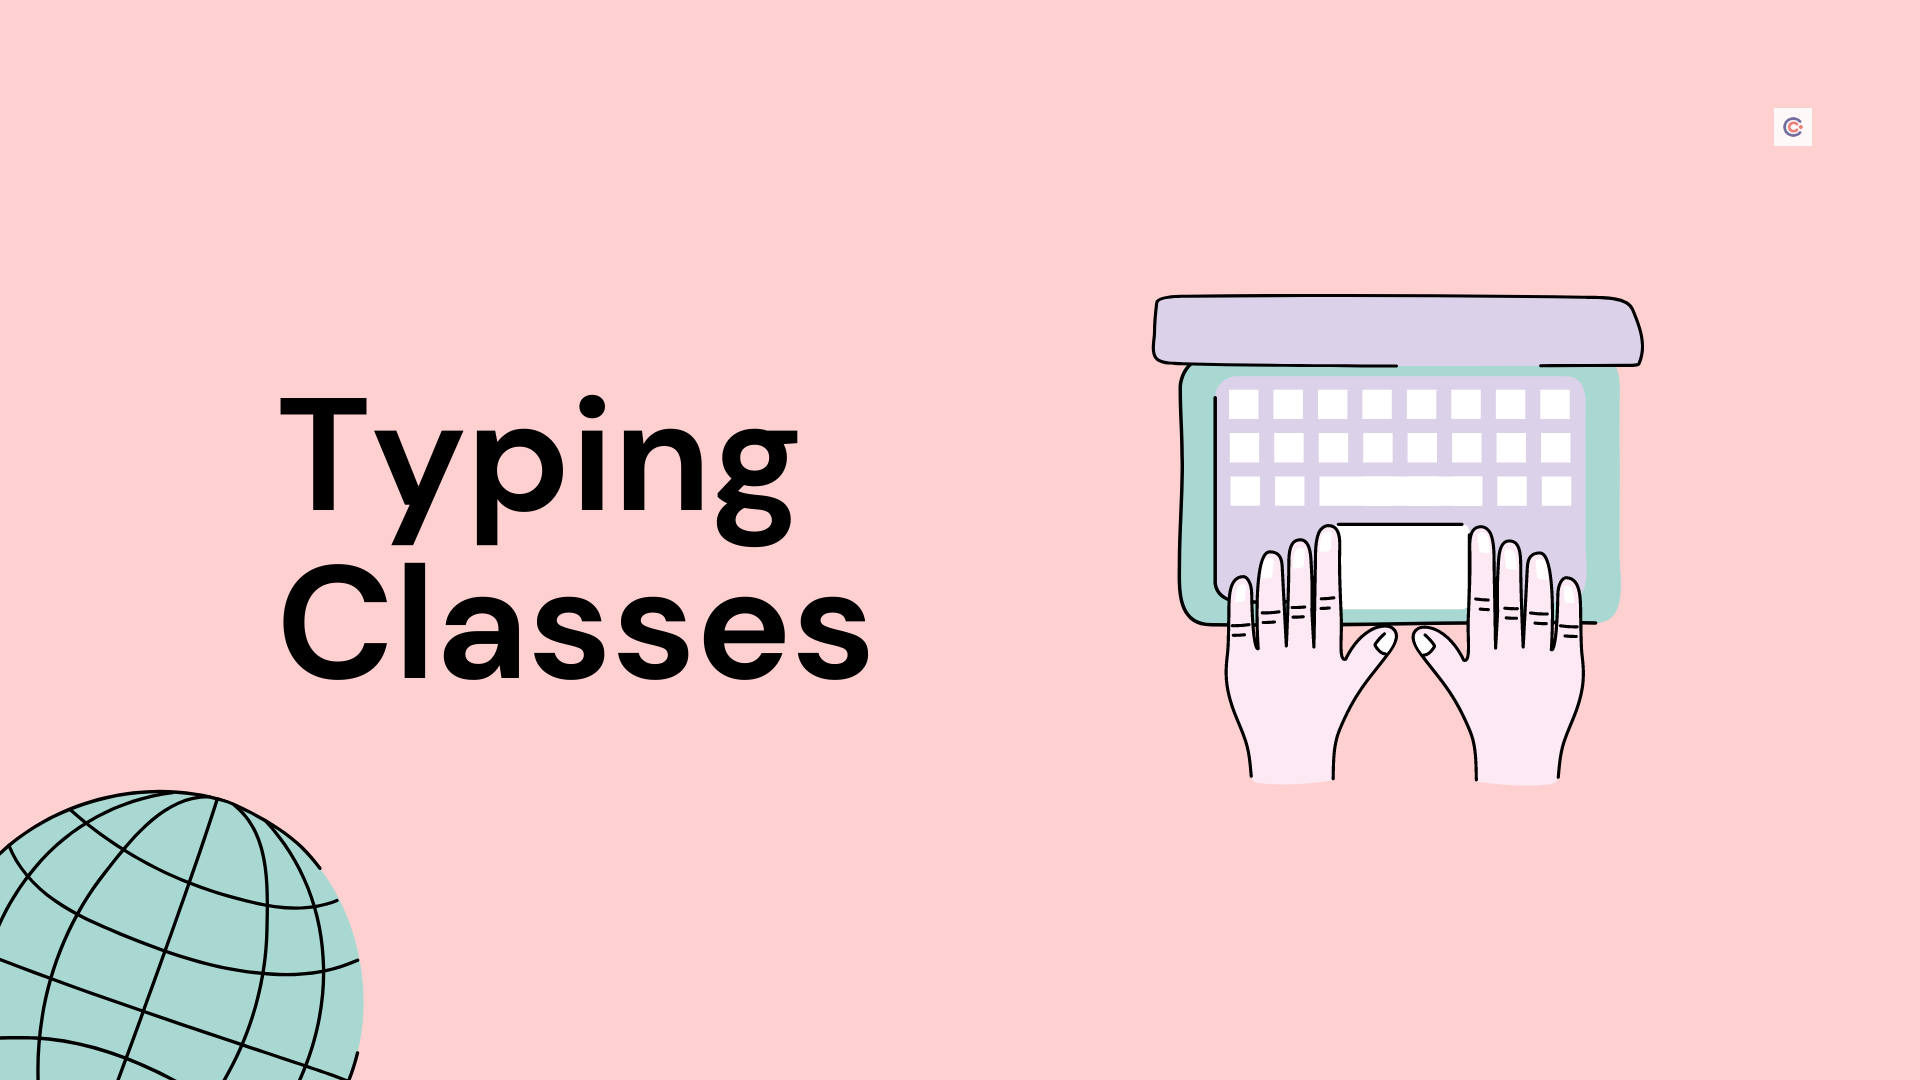 5 Best Typing Classes - Learn Typing Online